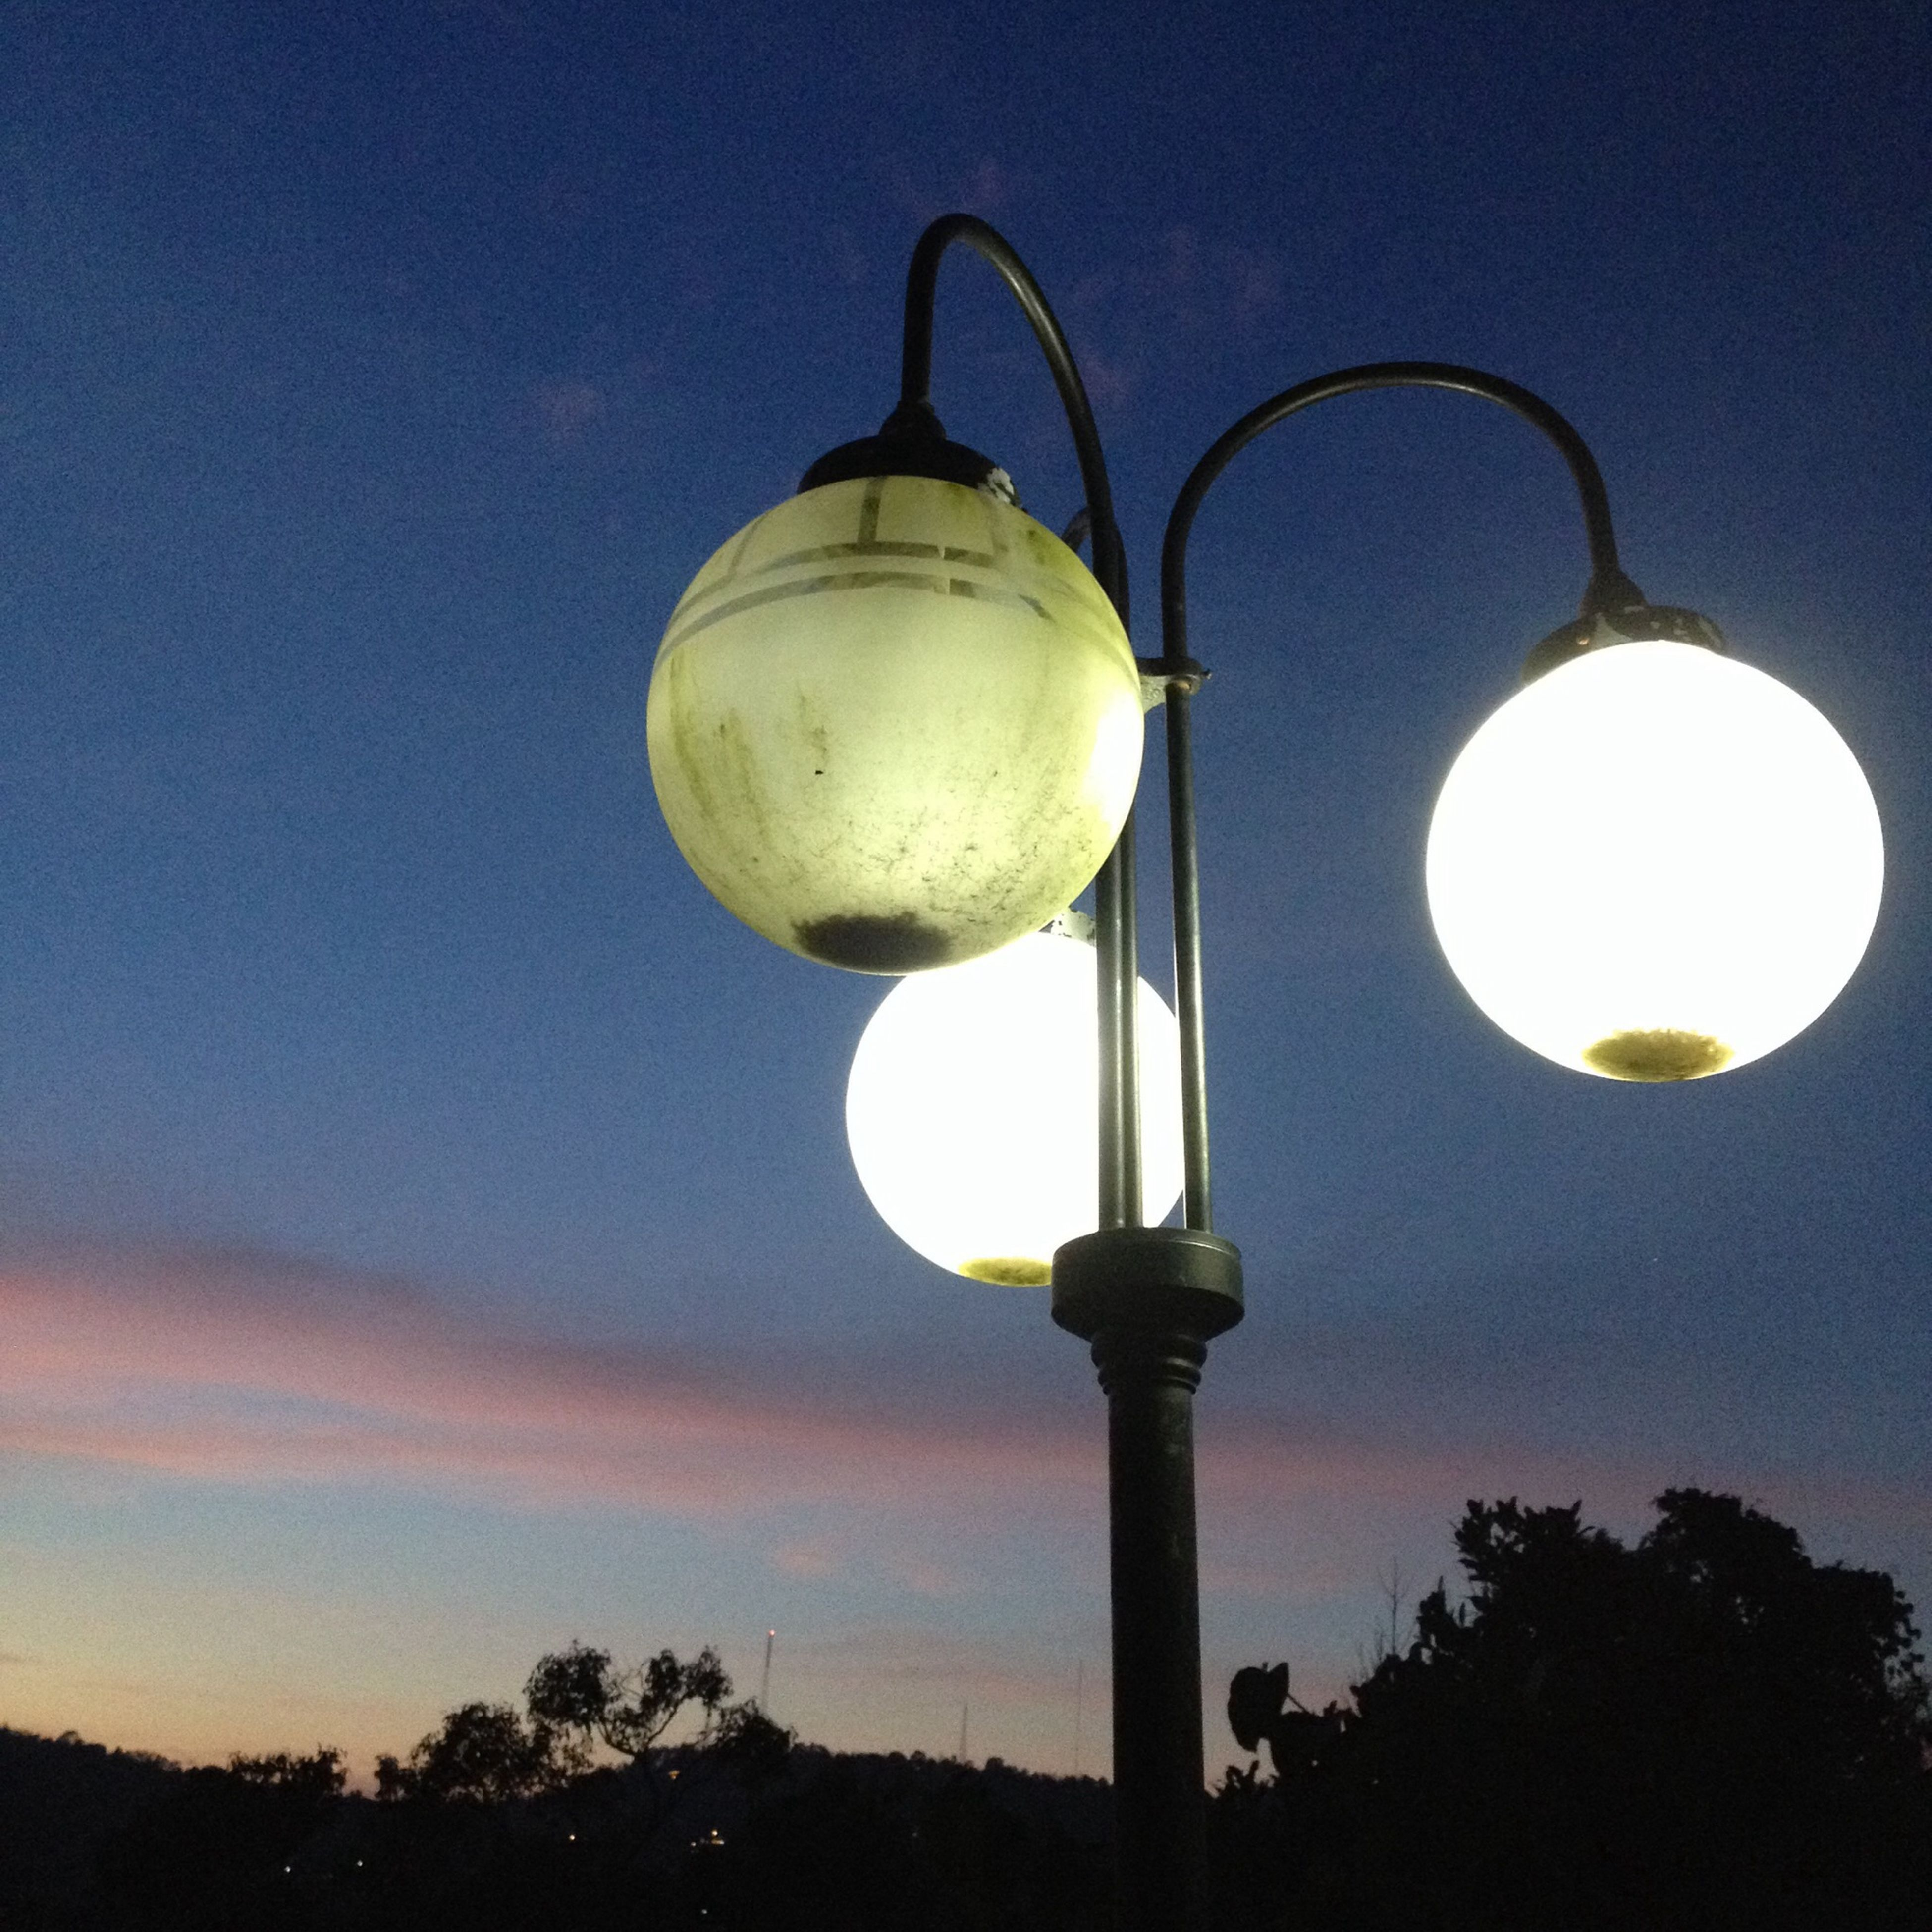 low angle view, lighting equipment, street light, illuminated, sky, electricity, electric light, sphere, tree, night, silhouette, hanging, light bulb, lamp post, moon, dusk, electric lamp, no people, outdoors, nature